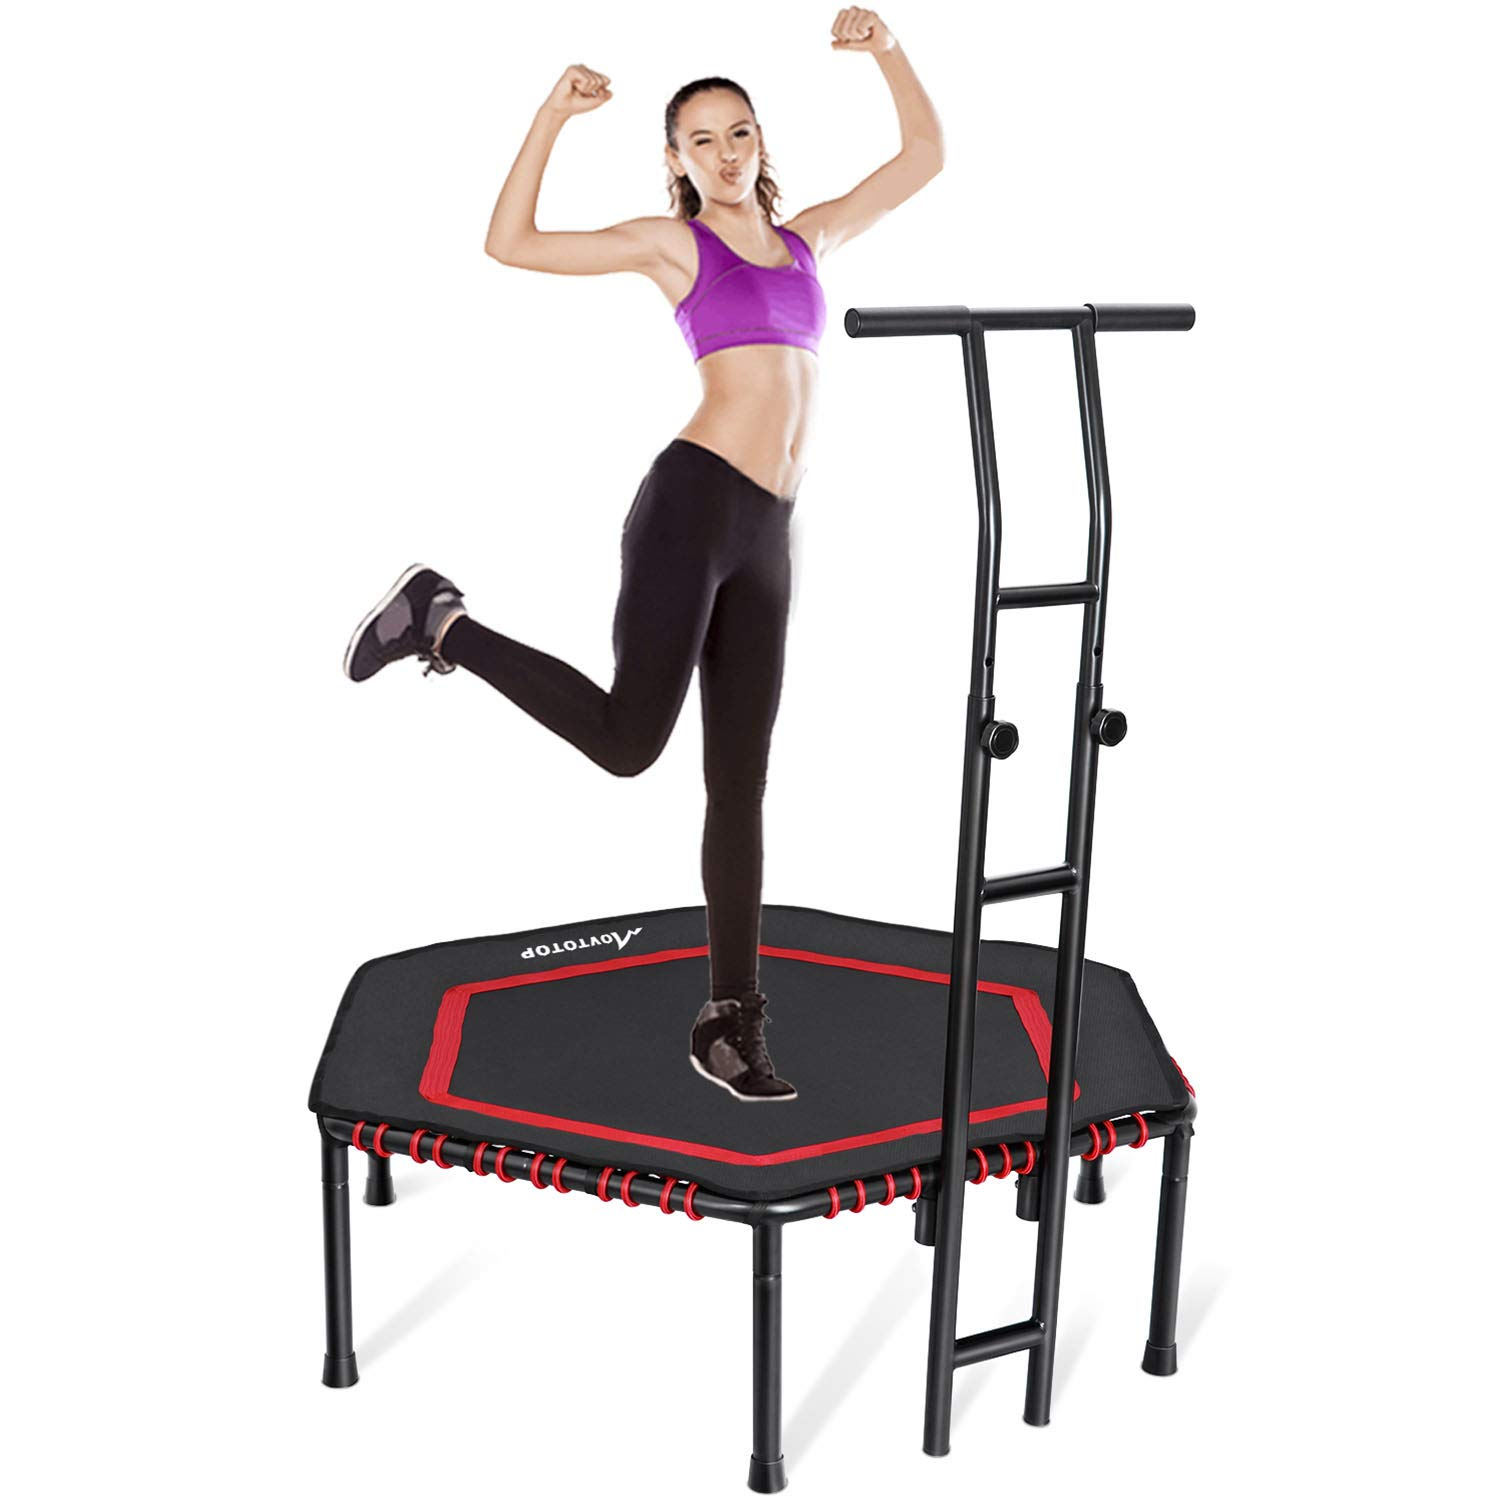 MOVTOTOP Indoor Fitness Trampoline Folding 48 Inch with Adjustable Handrail and Safety Pad, Exercise Trampoline Rebounder for Kids Adults